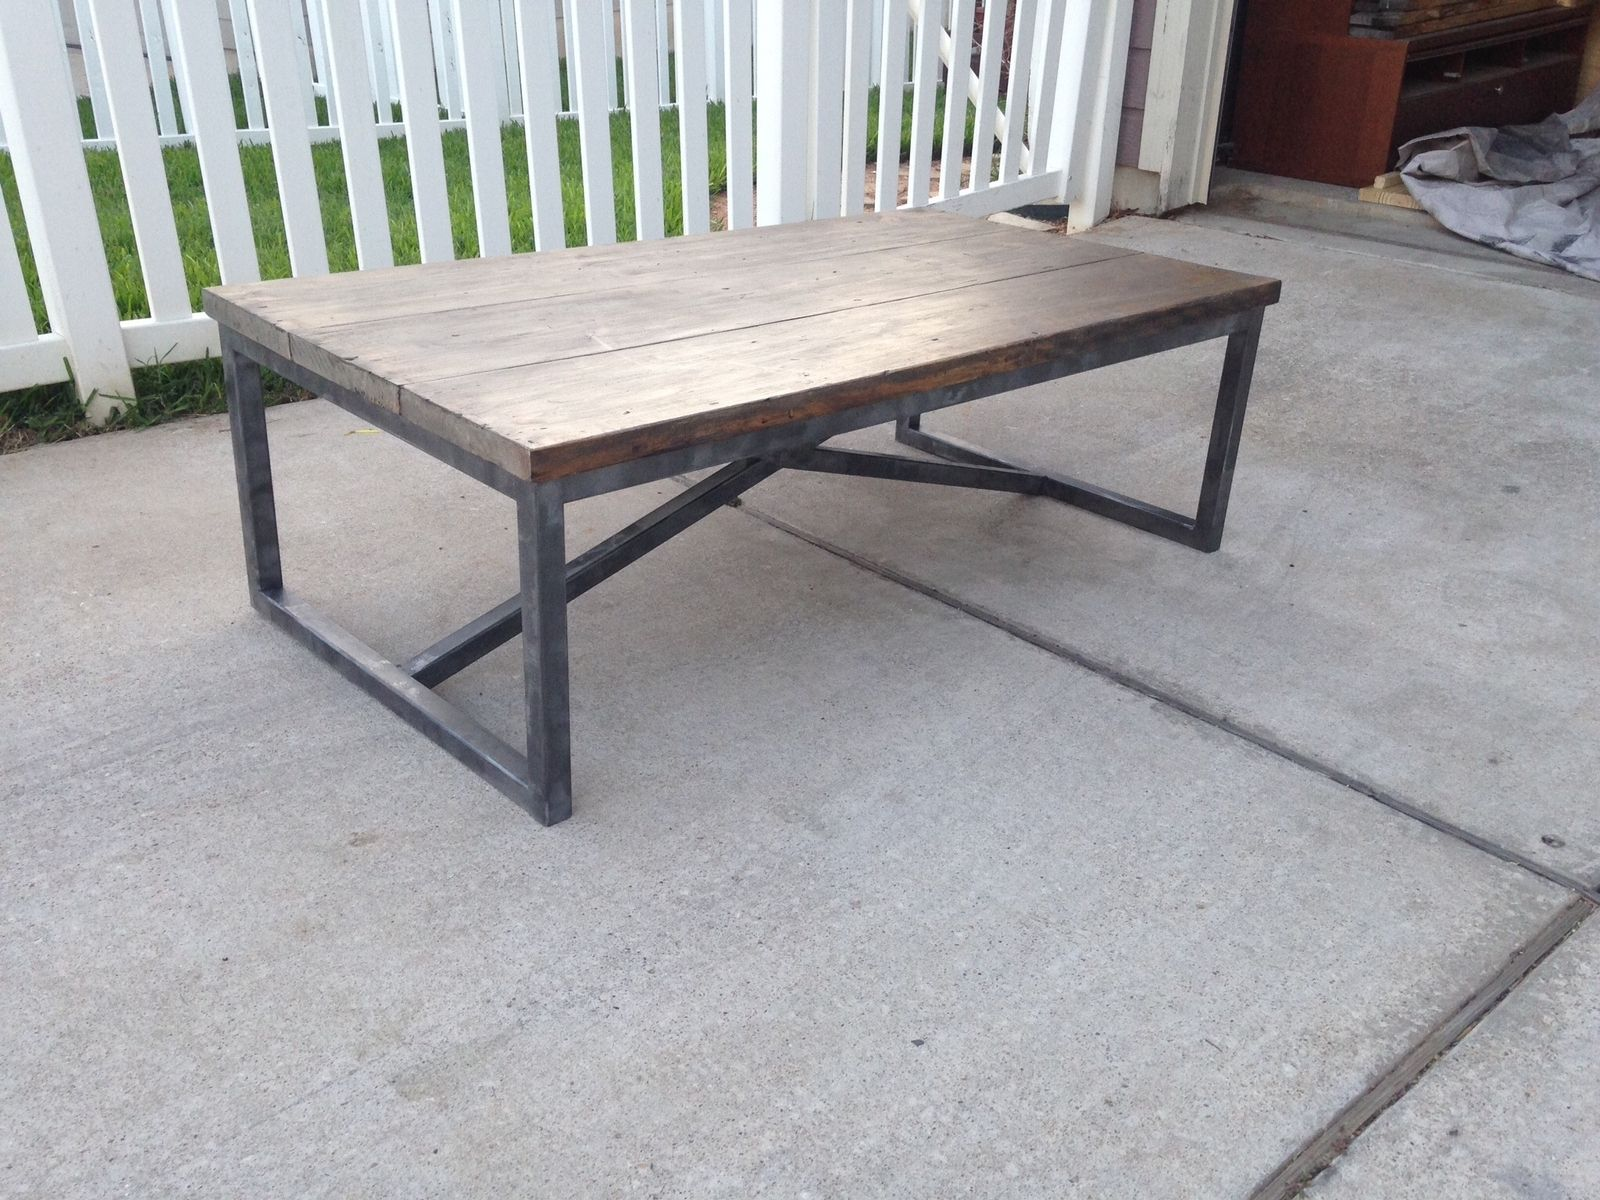 Handmade Rustic X Brace Coffee Table With Recycled Metal Frame by